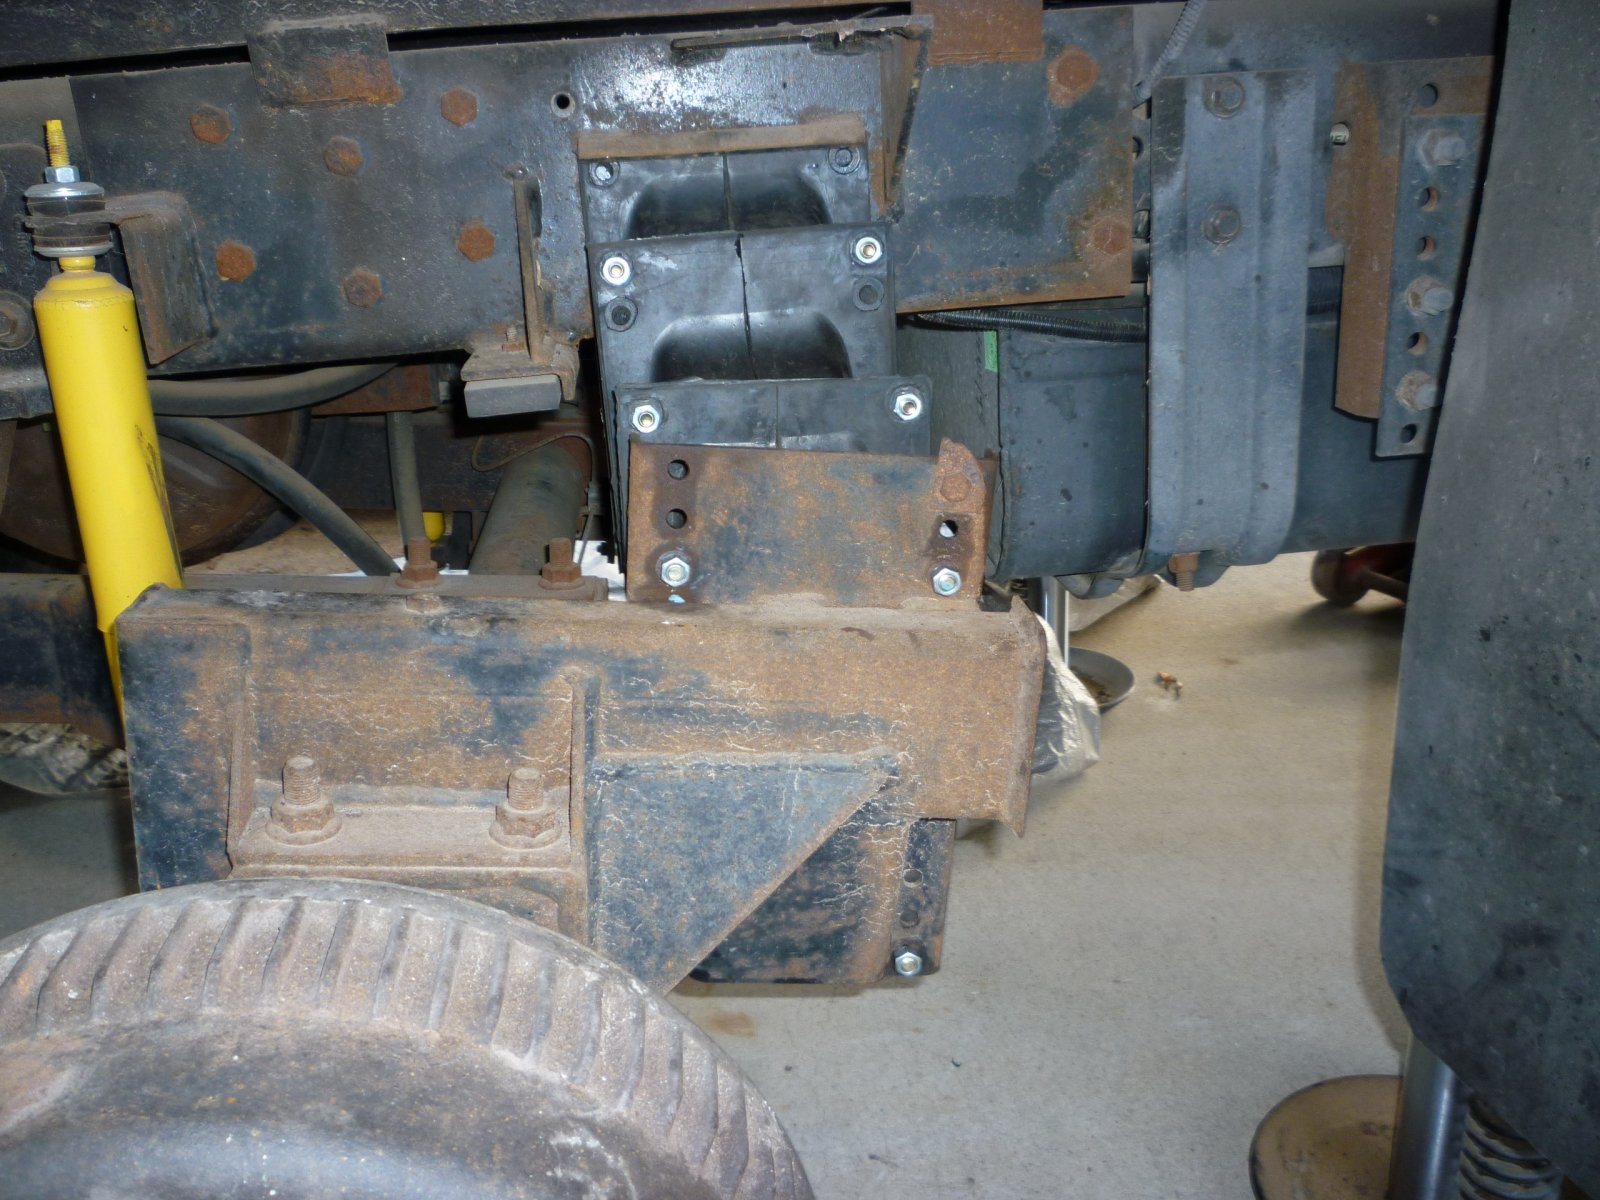 Tag axle problems - iRV2 Forums